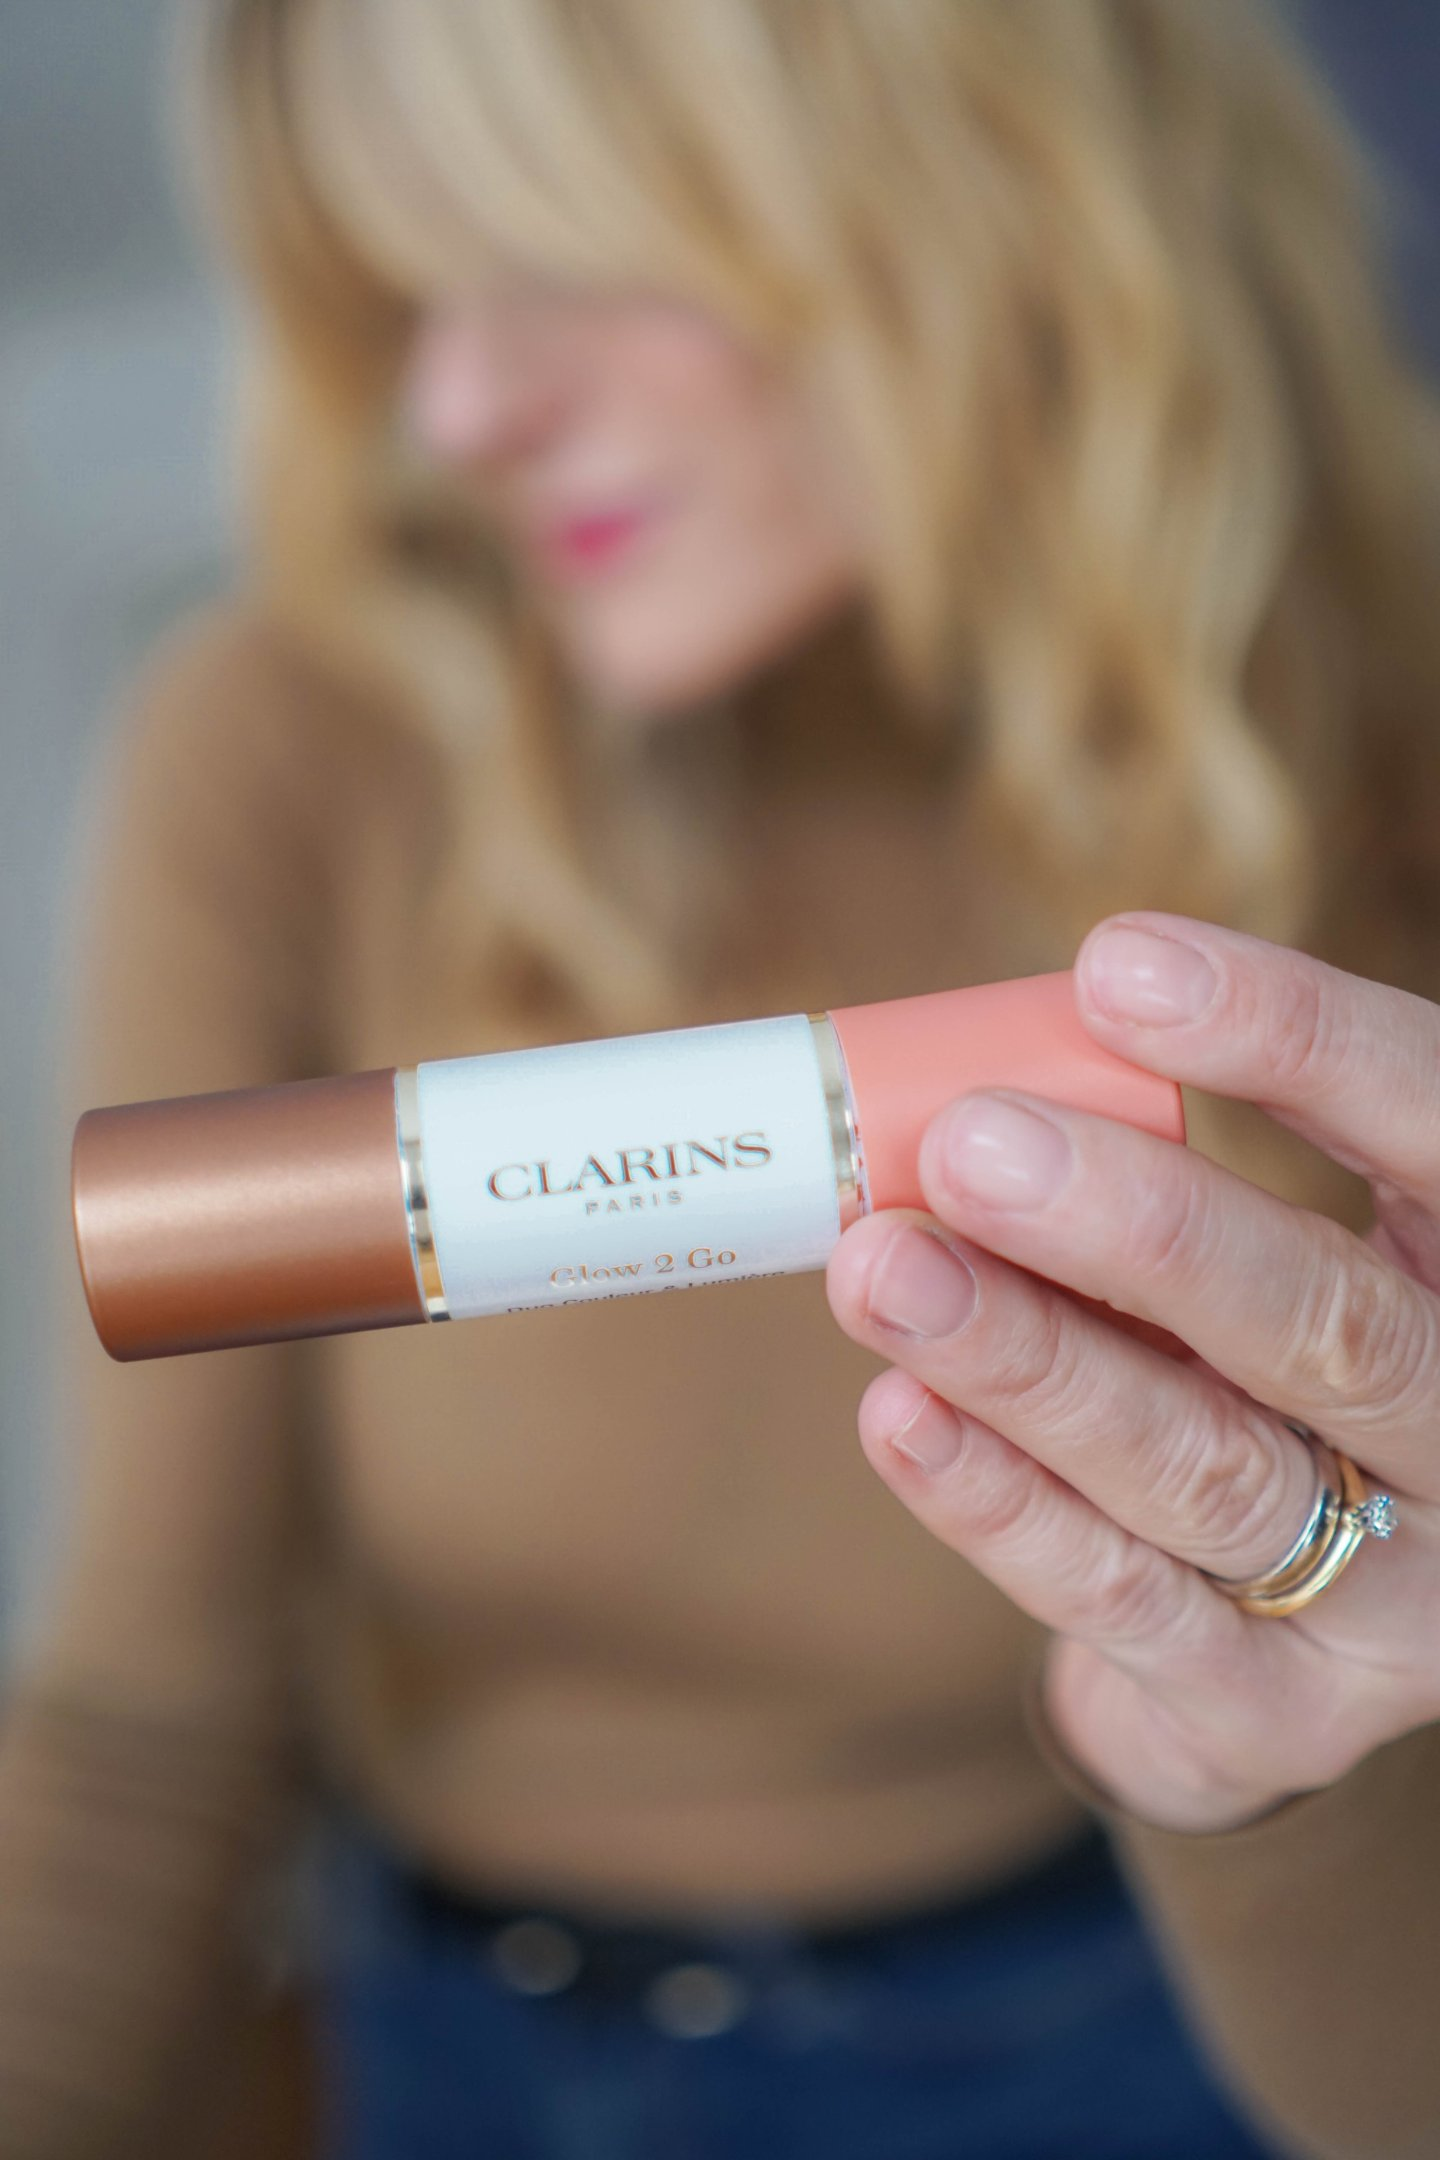 Glowy Skin-Soft Contour-Clarins Glow to Go Review-Makeup Tutorial-Nowshine Beauty Blog